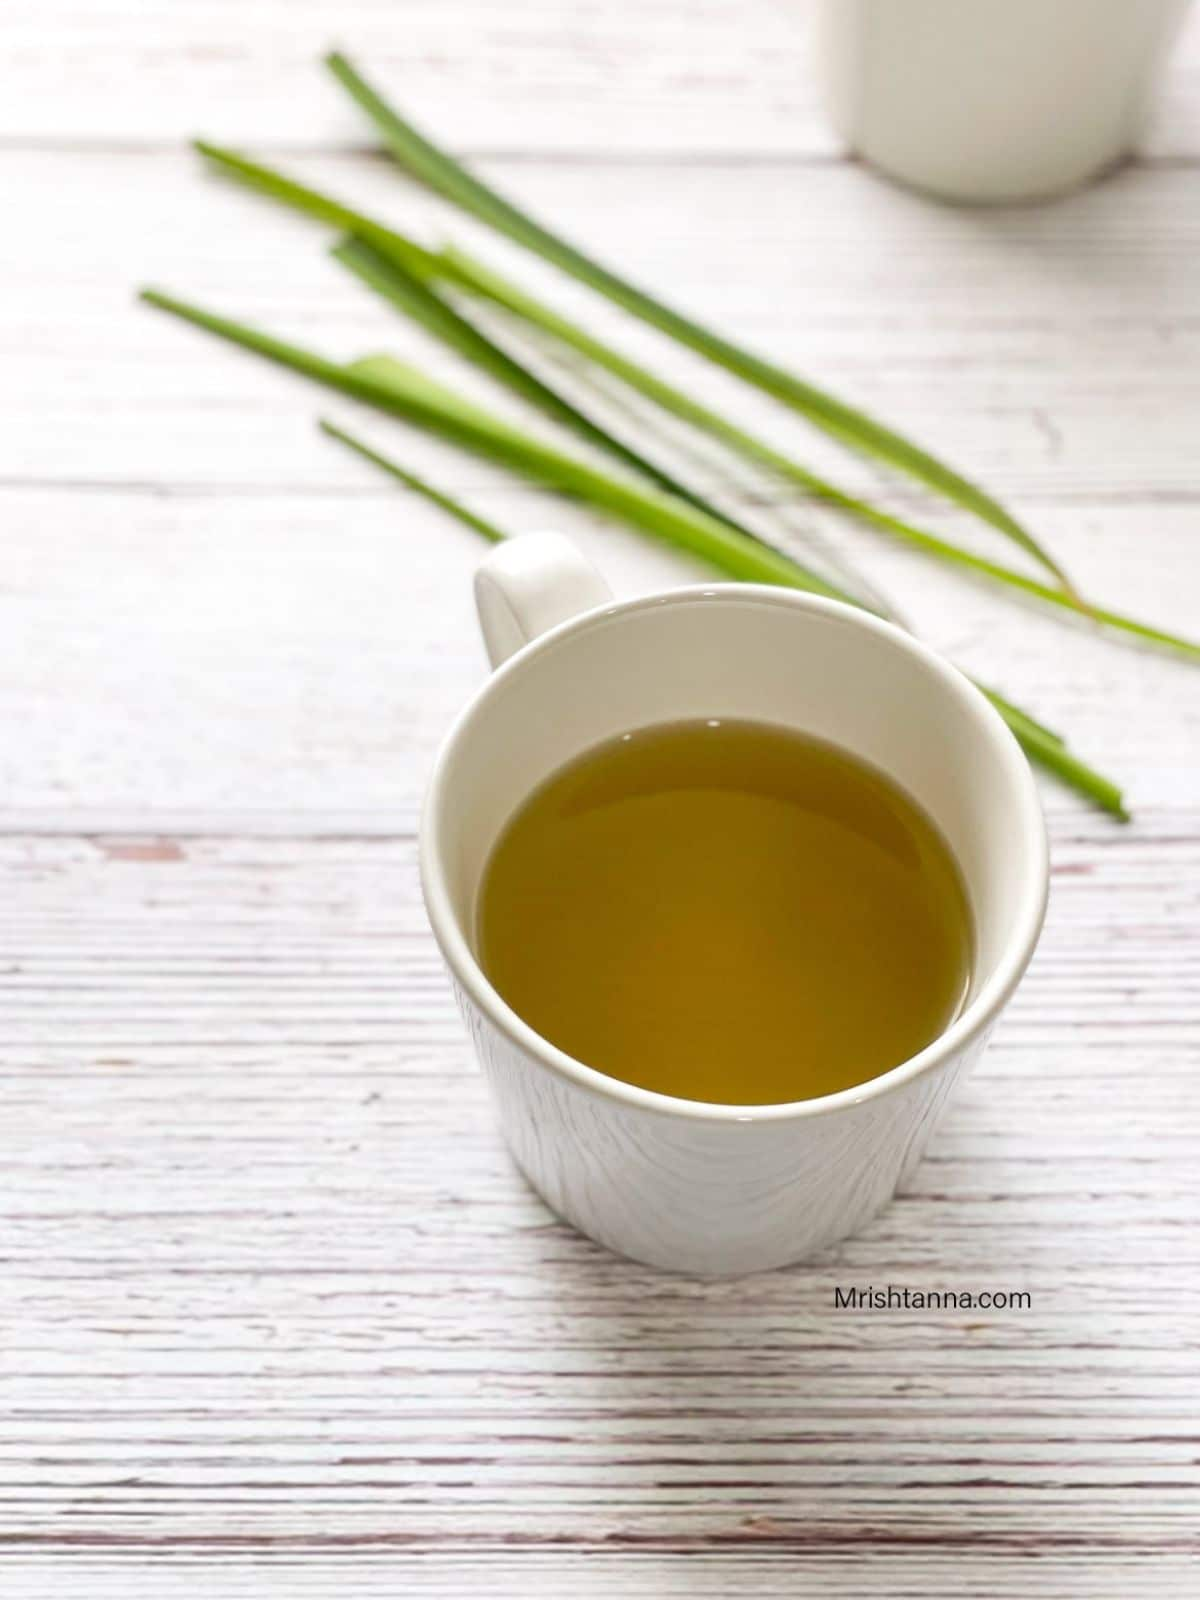 A cup of lemongrass tea is on the table